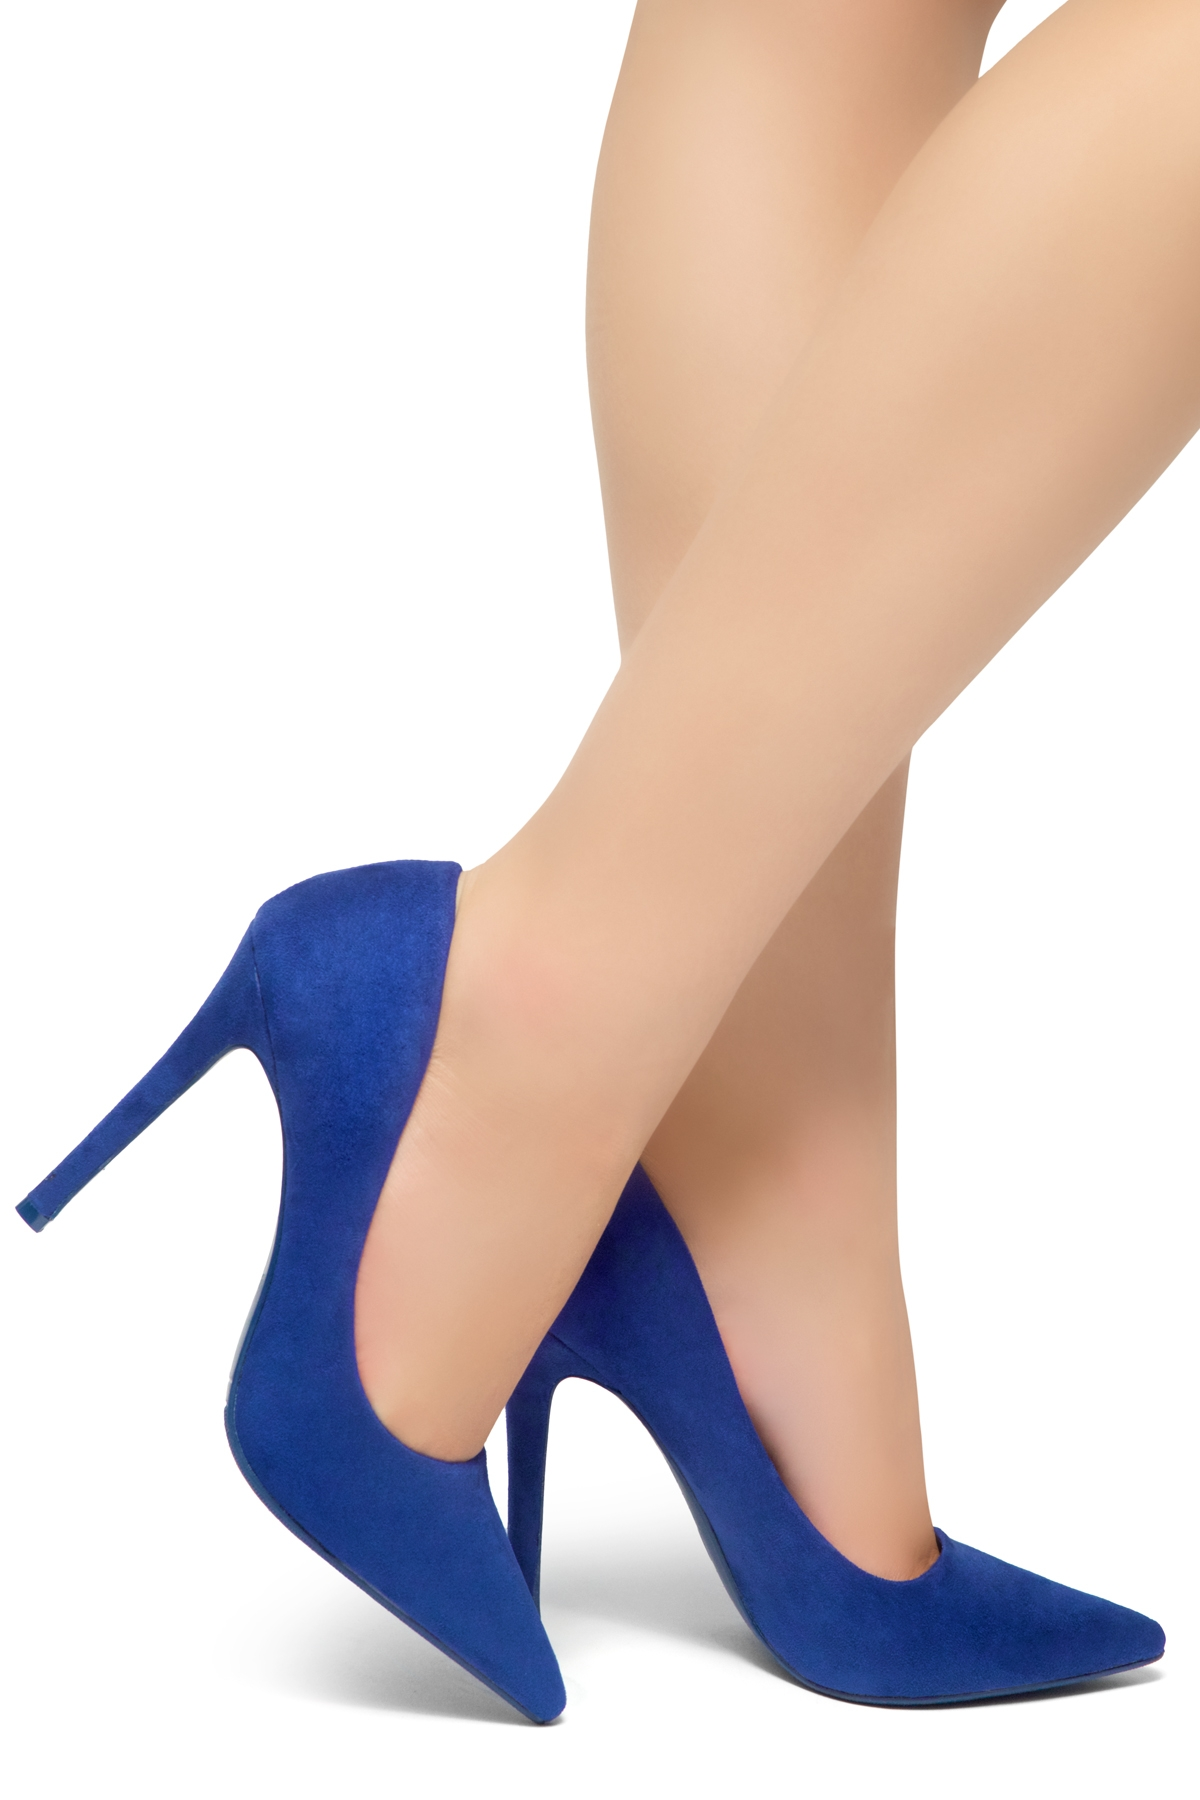 4-inch Sueded Heel with Lightly Pointed Toe